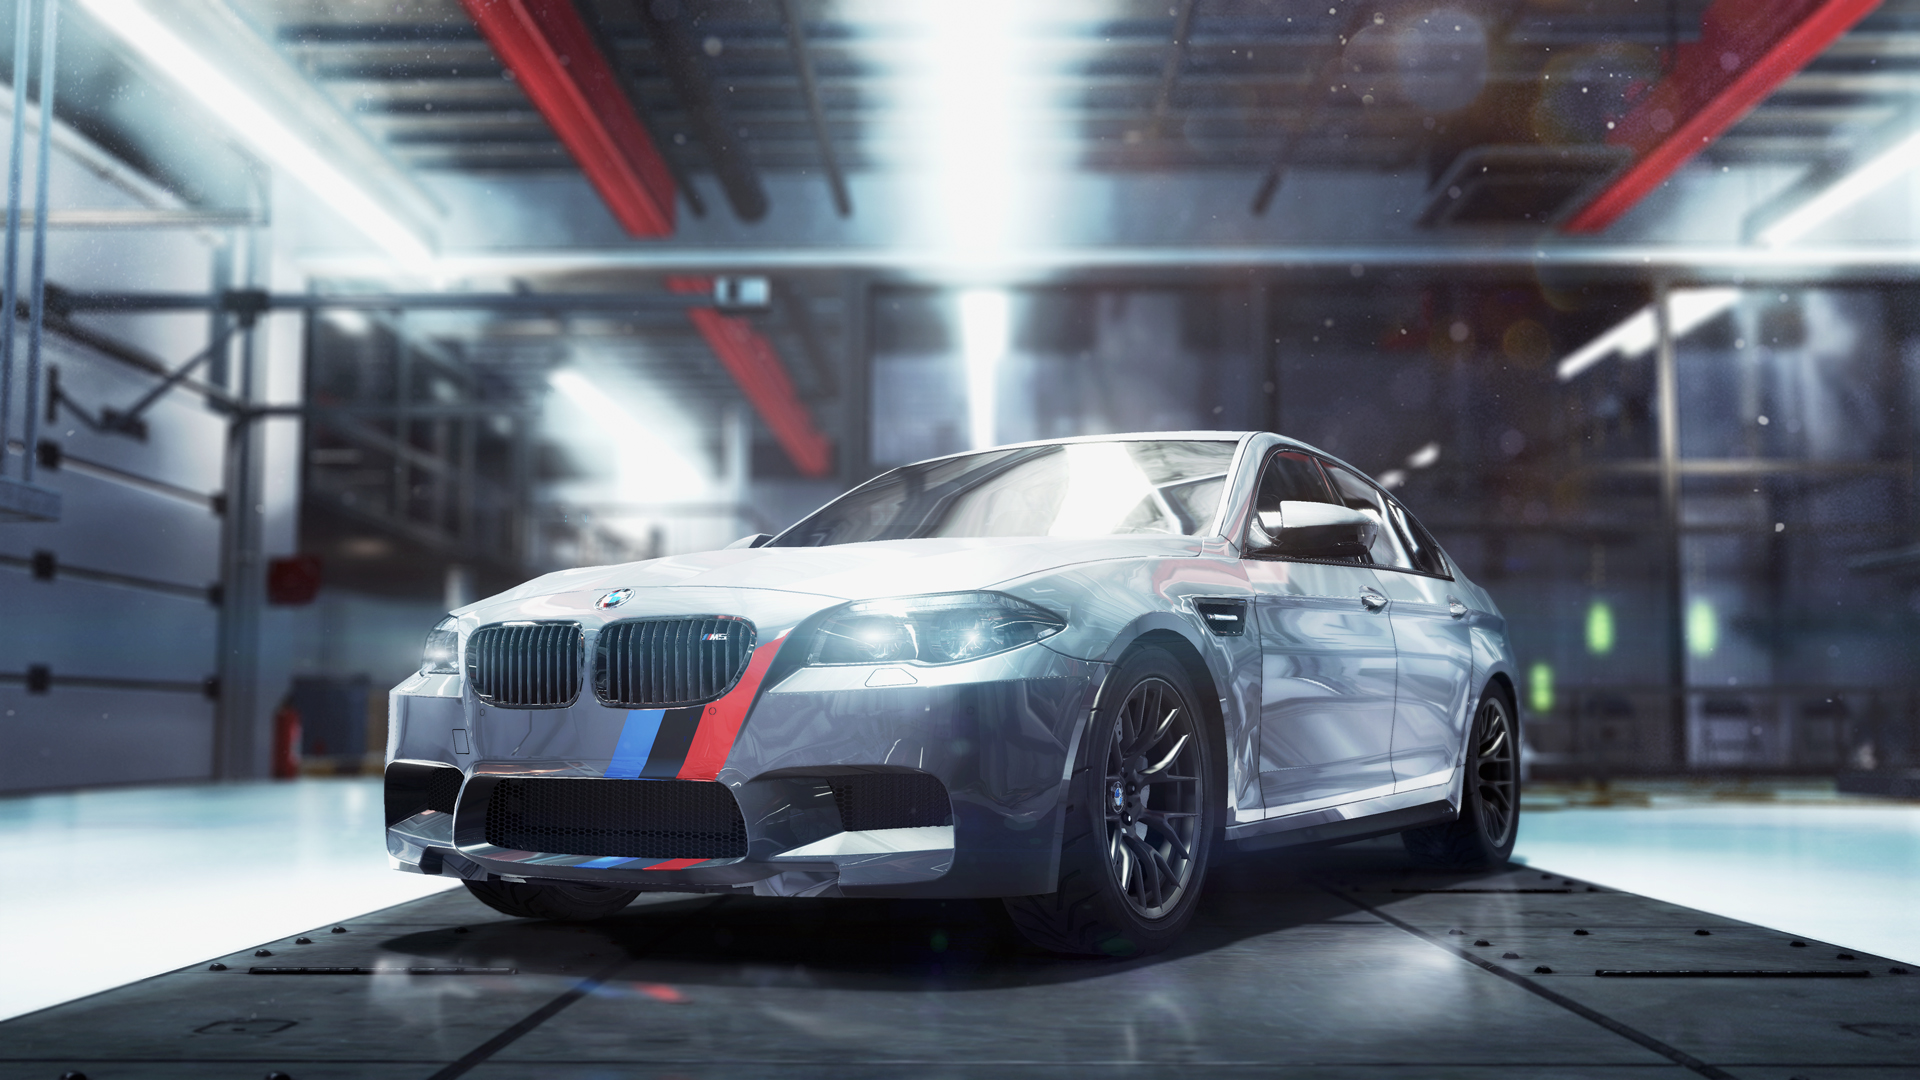 Image  BMW M5 2011 perf bigjpg  THE CREW Wiki  FANDOM powered